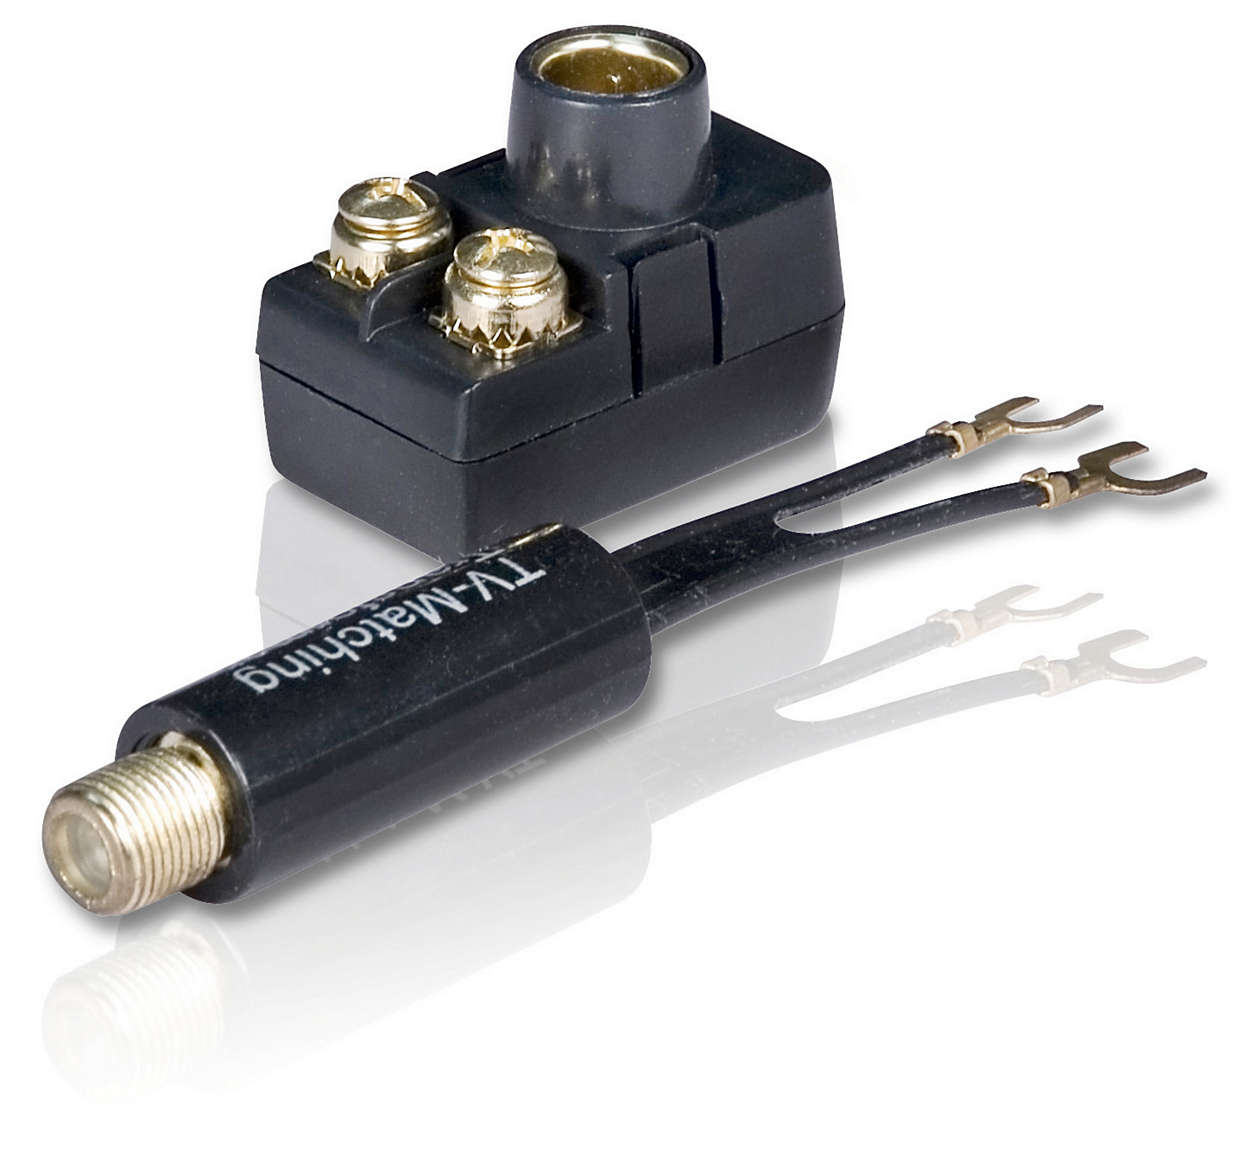 Convert a 75 ohm to a 300 ohm connection